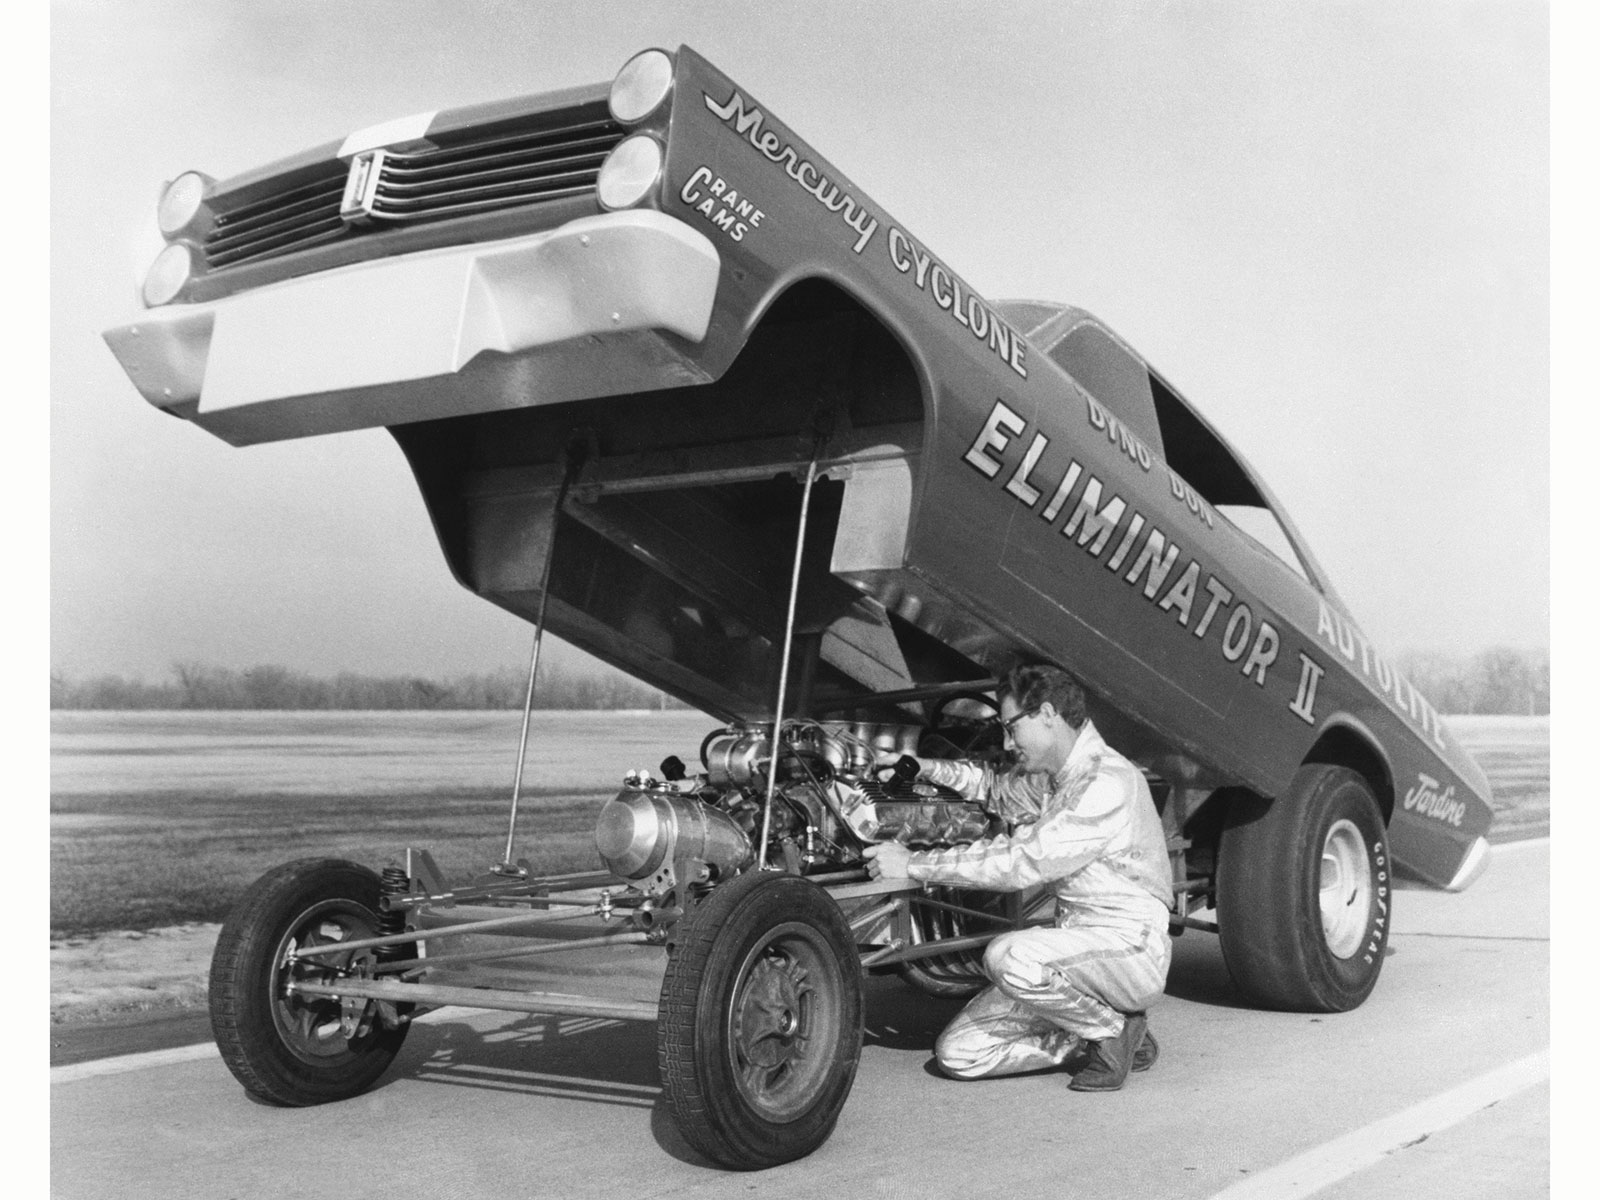 The second version of the 1966 Nicholson car and the 1967 Eliminator II, shown here in testing at the Ford Dearborn test track, both had deep front spoilers that kept the air from lifting the front end. The design was spectacularly successful when placed in the experienced hands of racers like Nicholson and his mechanic Earl Wade, Nicholson disciple Eddie Schartman, West Coast legend Jack Chrisman (who was the first to run his Comet with the blown Cammer engine), and the Denver team of Kenz & Leslie. Needless to say, these boys made a fortune match racing in between NHRA and AHRA events and were nearly unbeatable because the cars were so light and so sleek, and the engine/transmission combination was dependable.